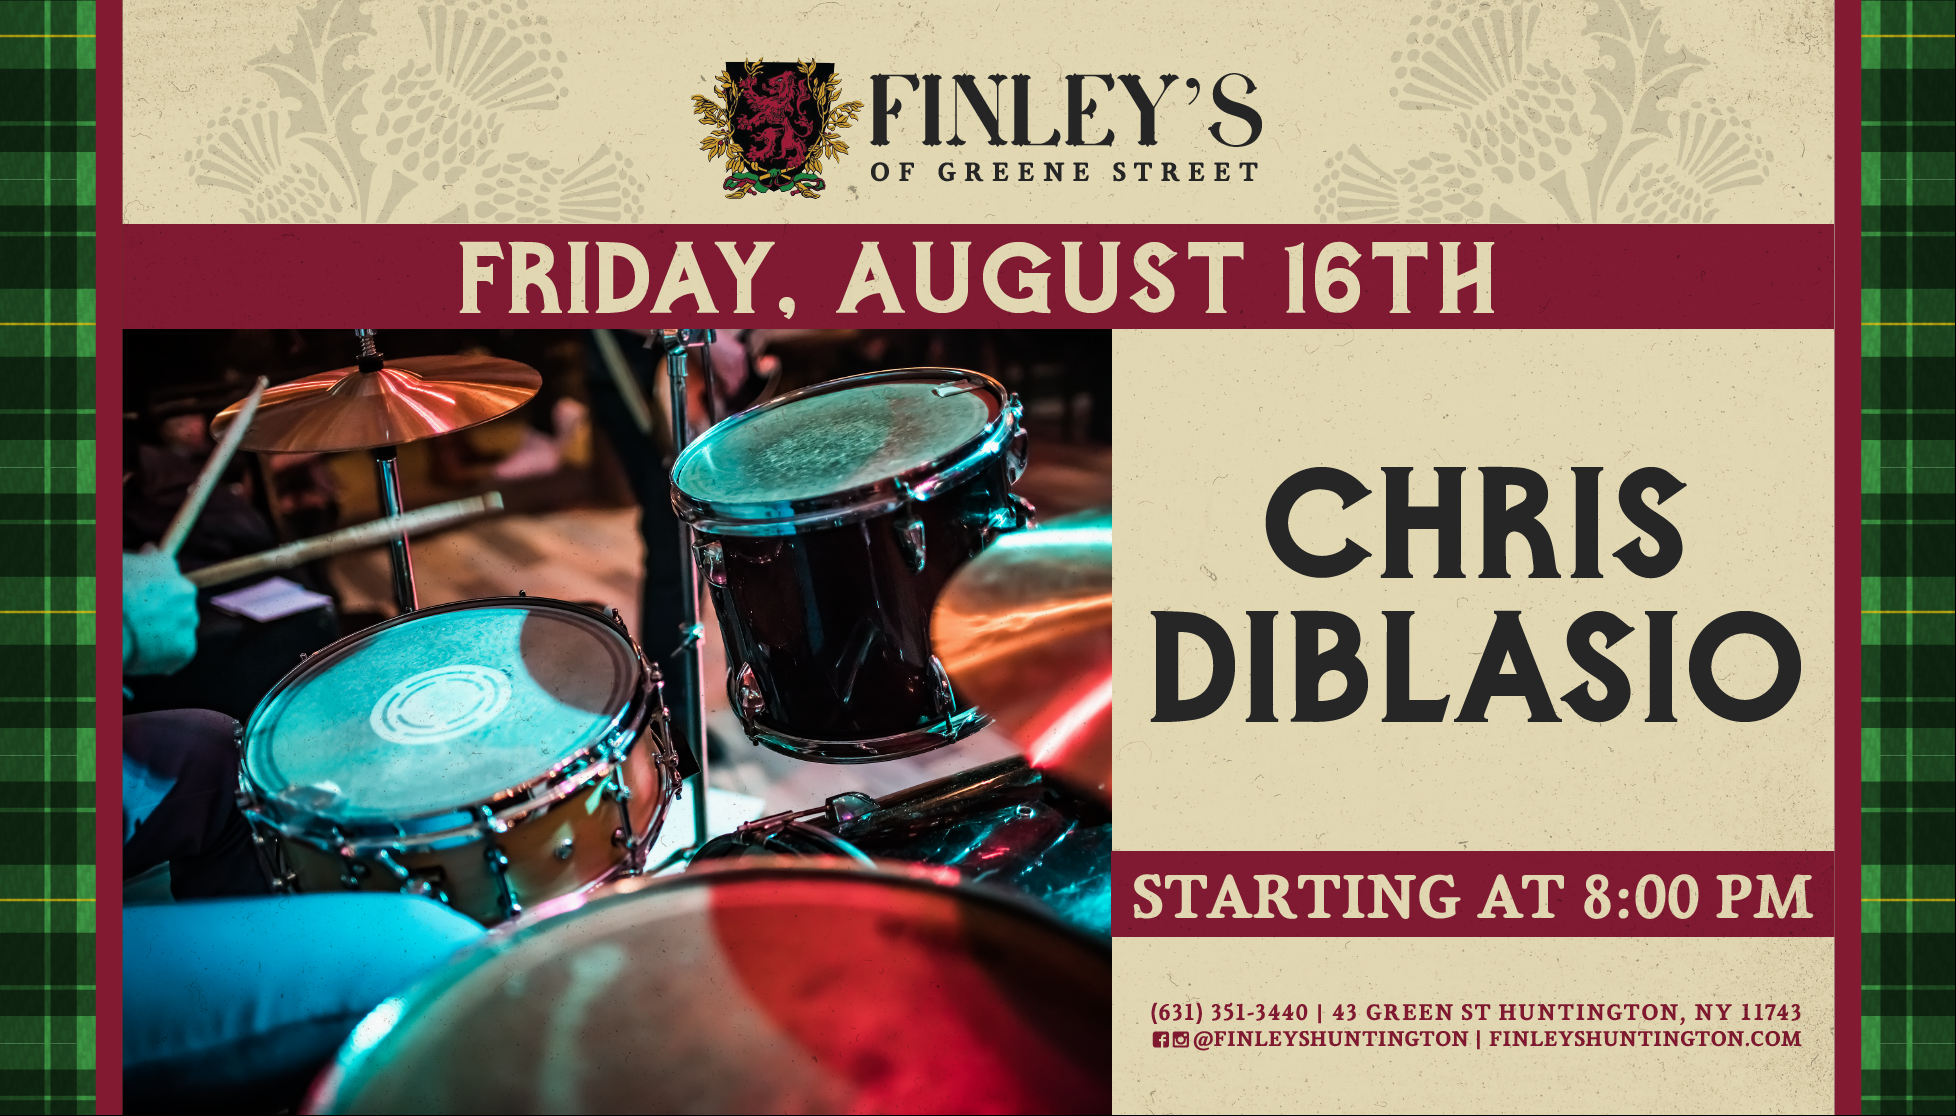 Flyer for Chris Diblasio on August 16th at 8pm.